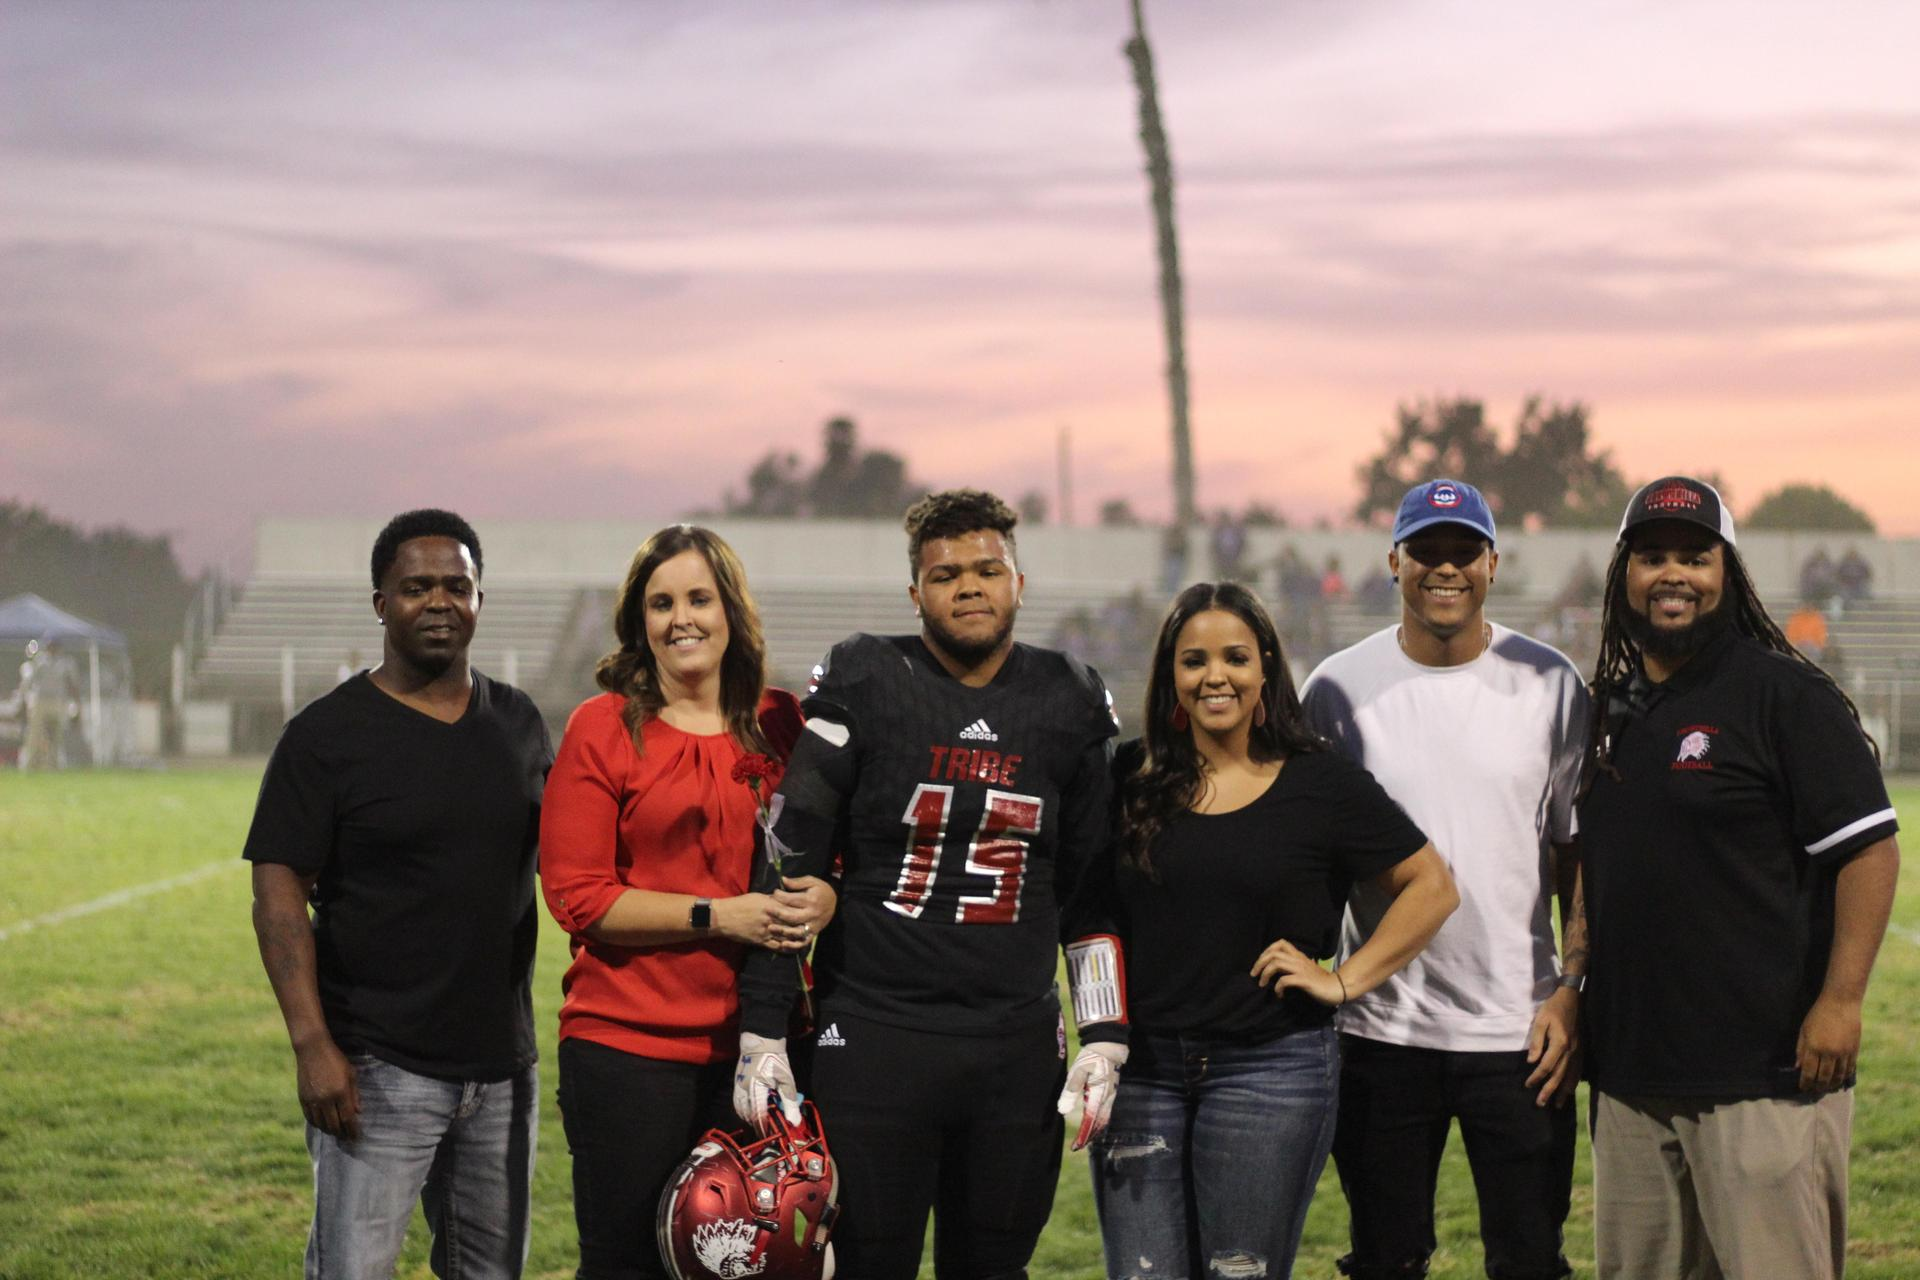 Senior football player Jaylinn Gaines and his escorts.